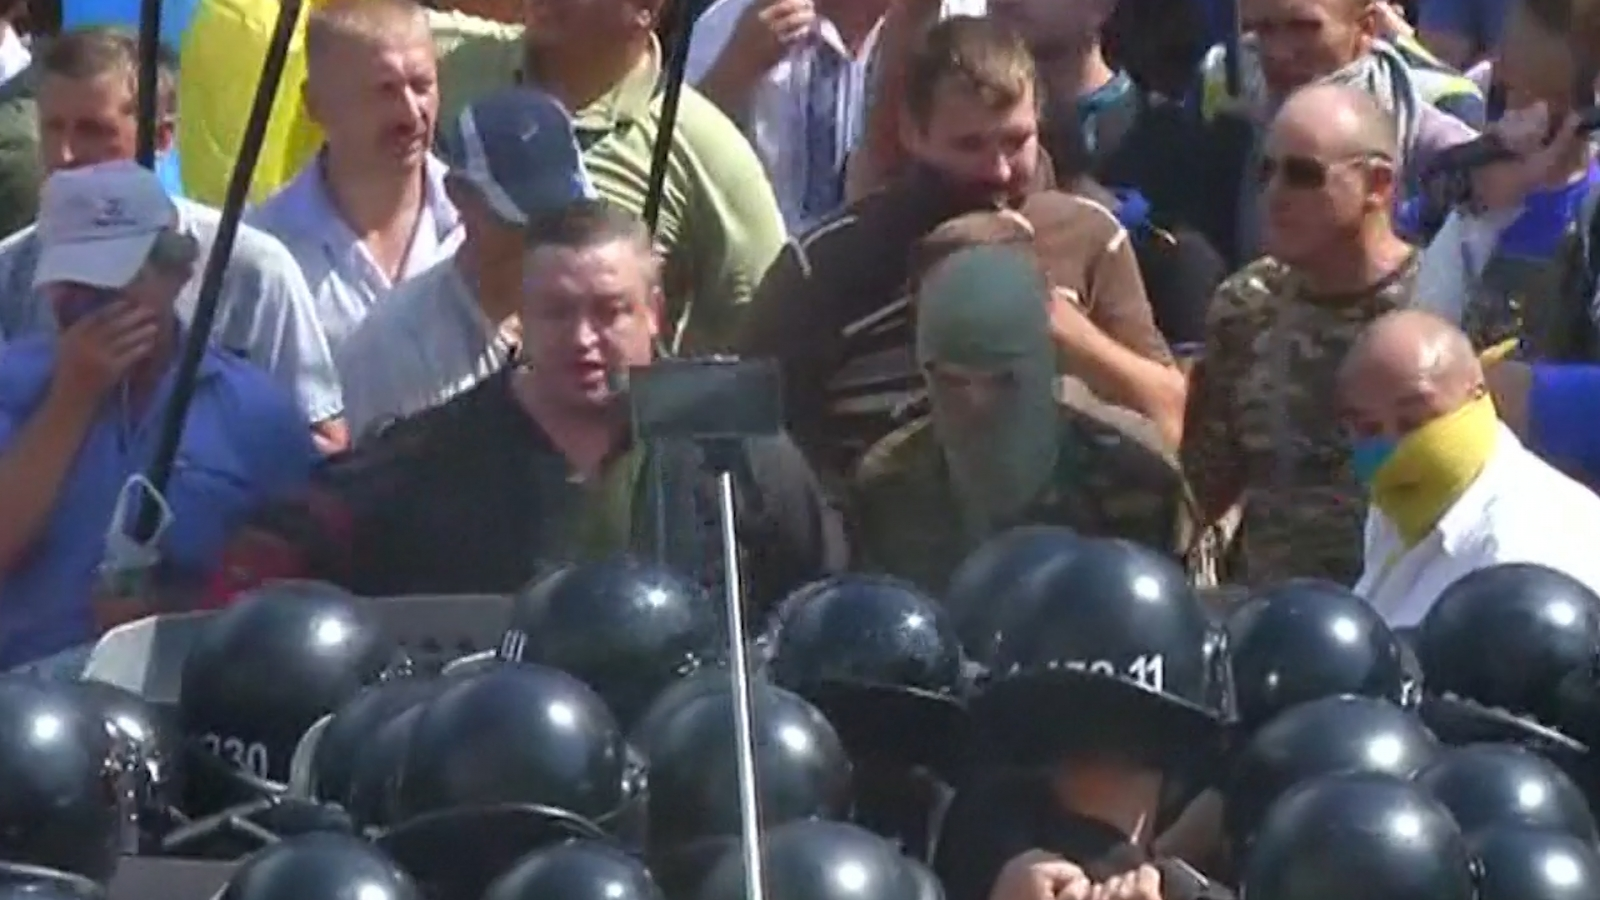 Ukraine parliament clashes